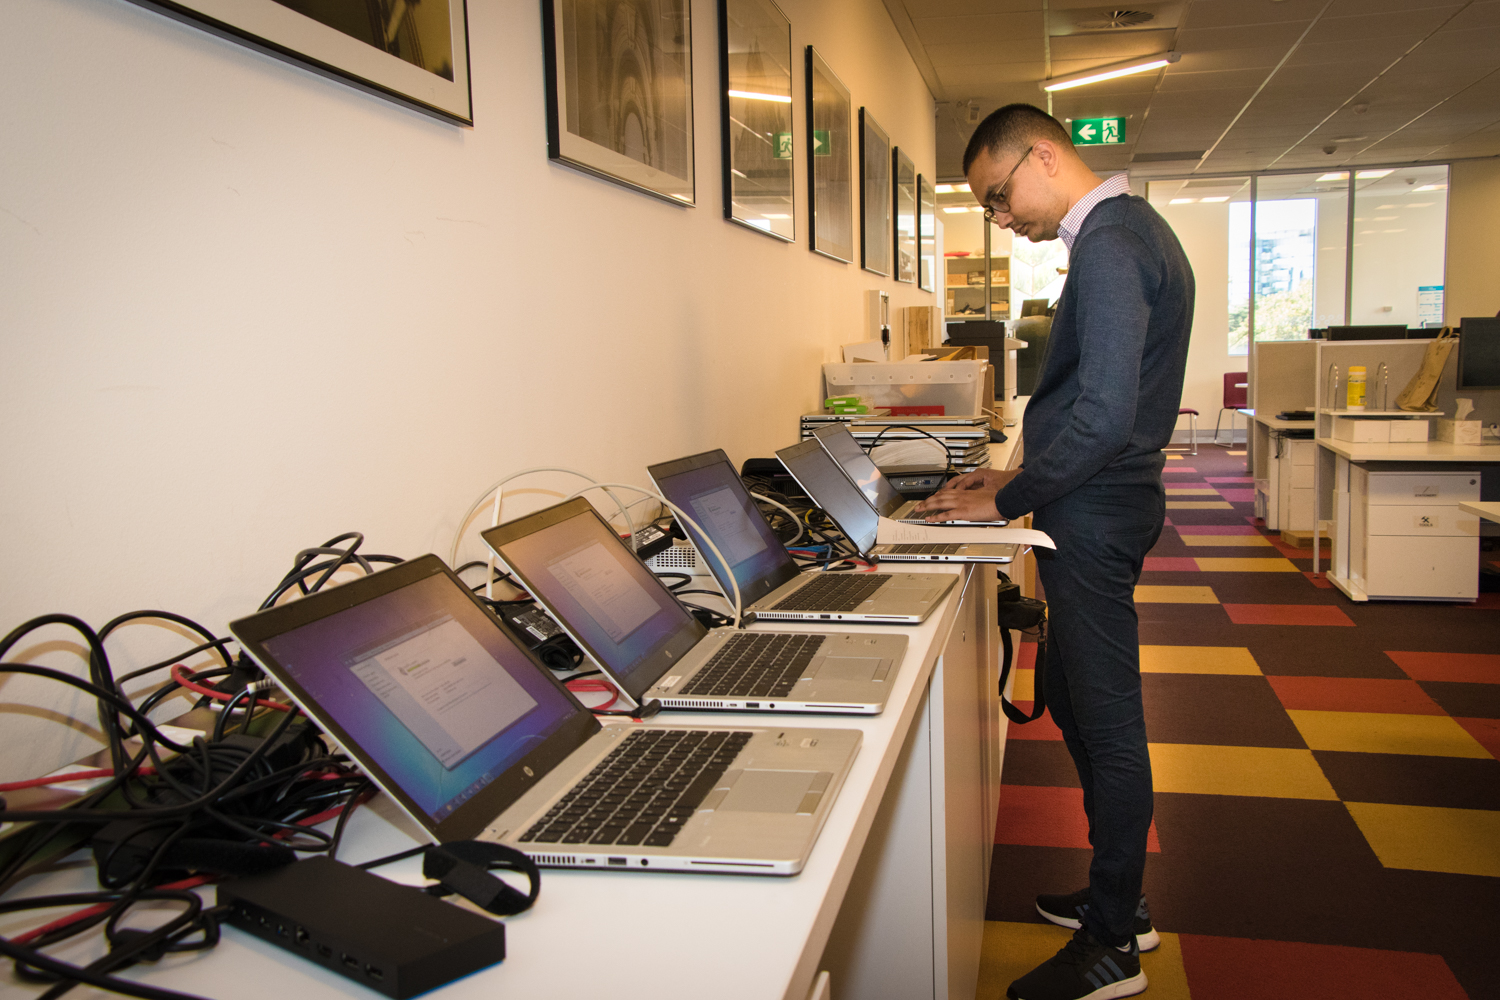 Staff prepare laptops for the Parliament of Tonga